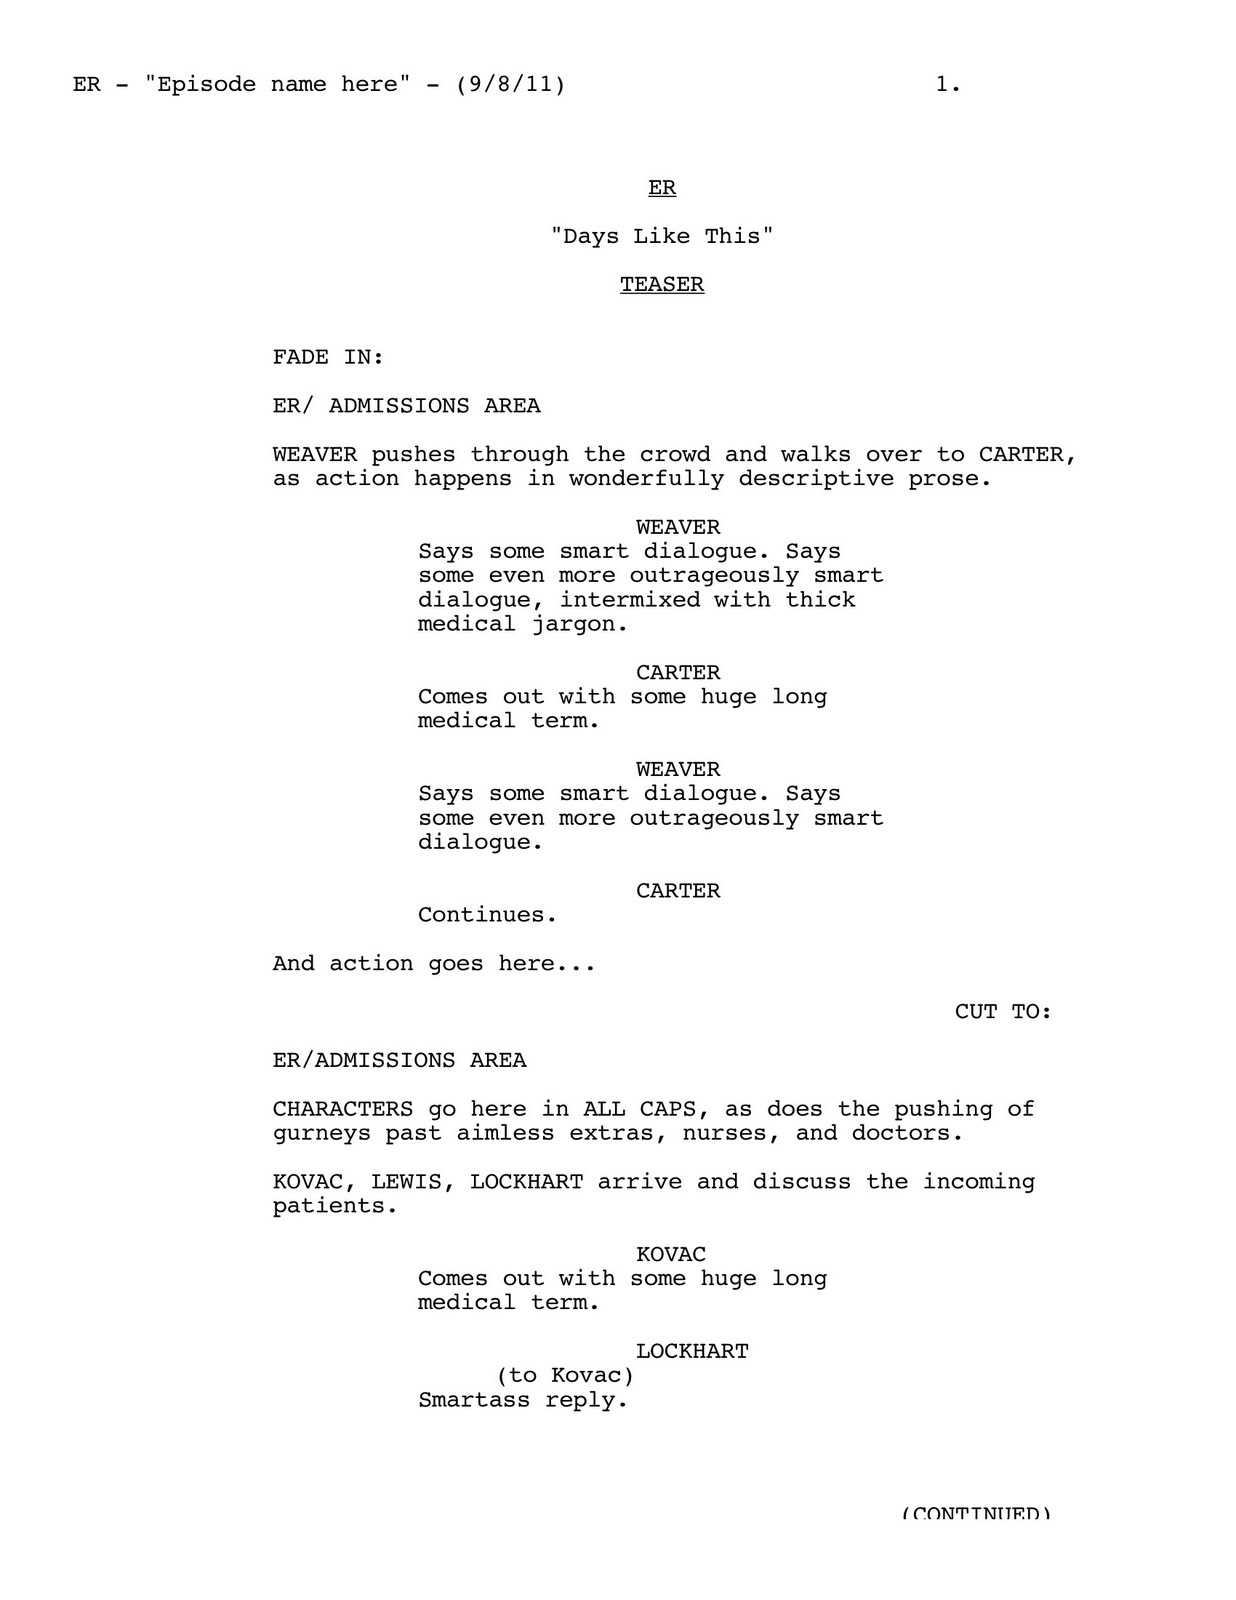 tv script writing software Screenplay format for tv shows episode title written by matt carless 1 series title episode title teaser fade in: ext location #1 - day if your show requires a pre-credits teaser, then indicate it like this all teasers and acts must begin with fade in.